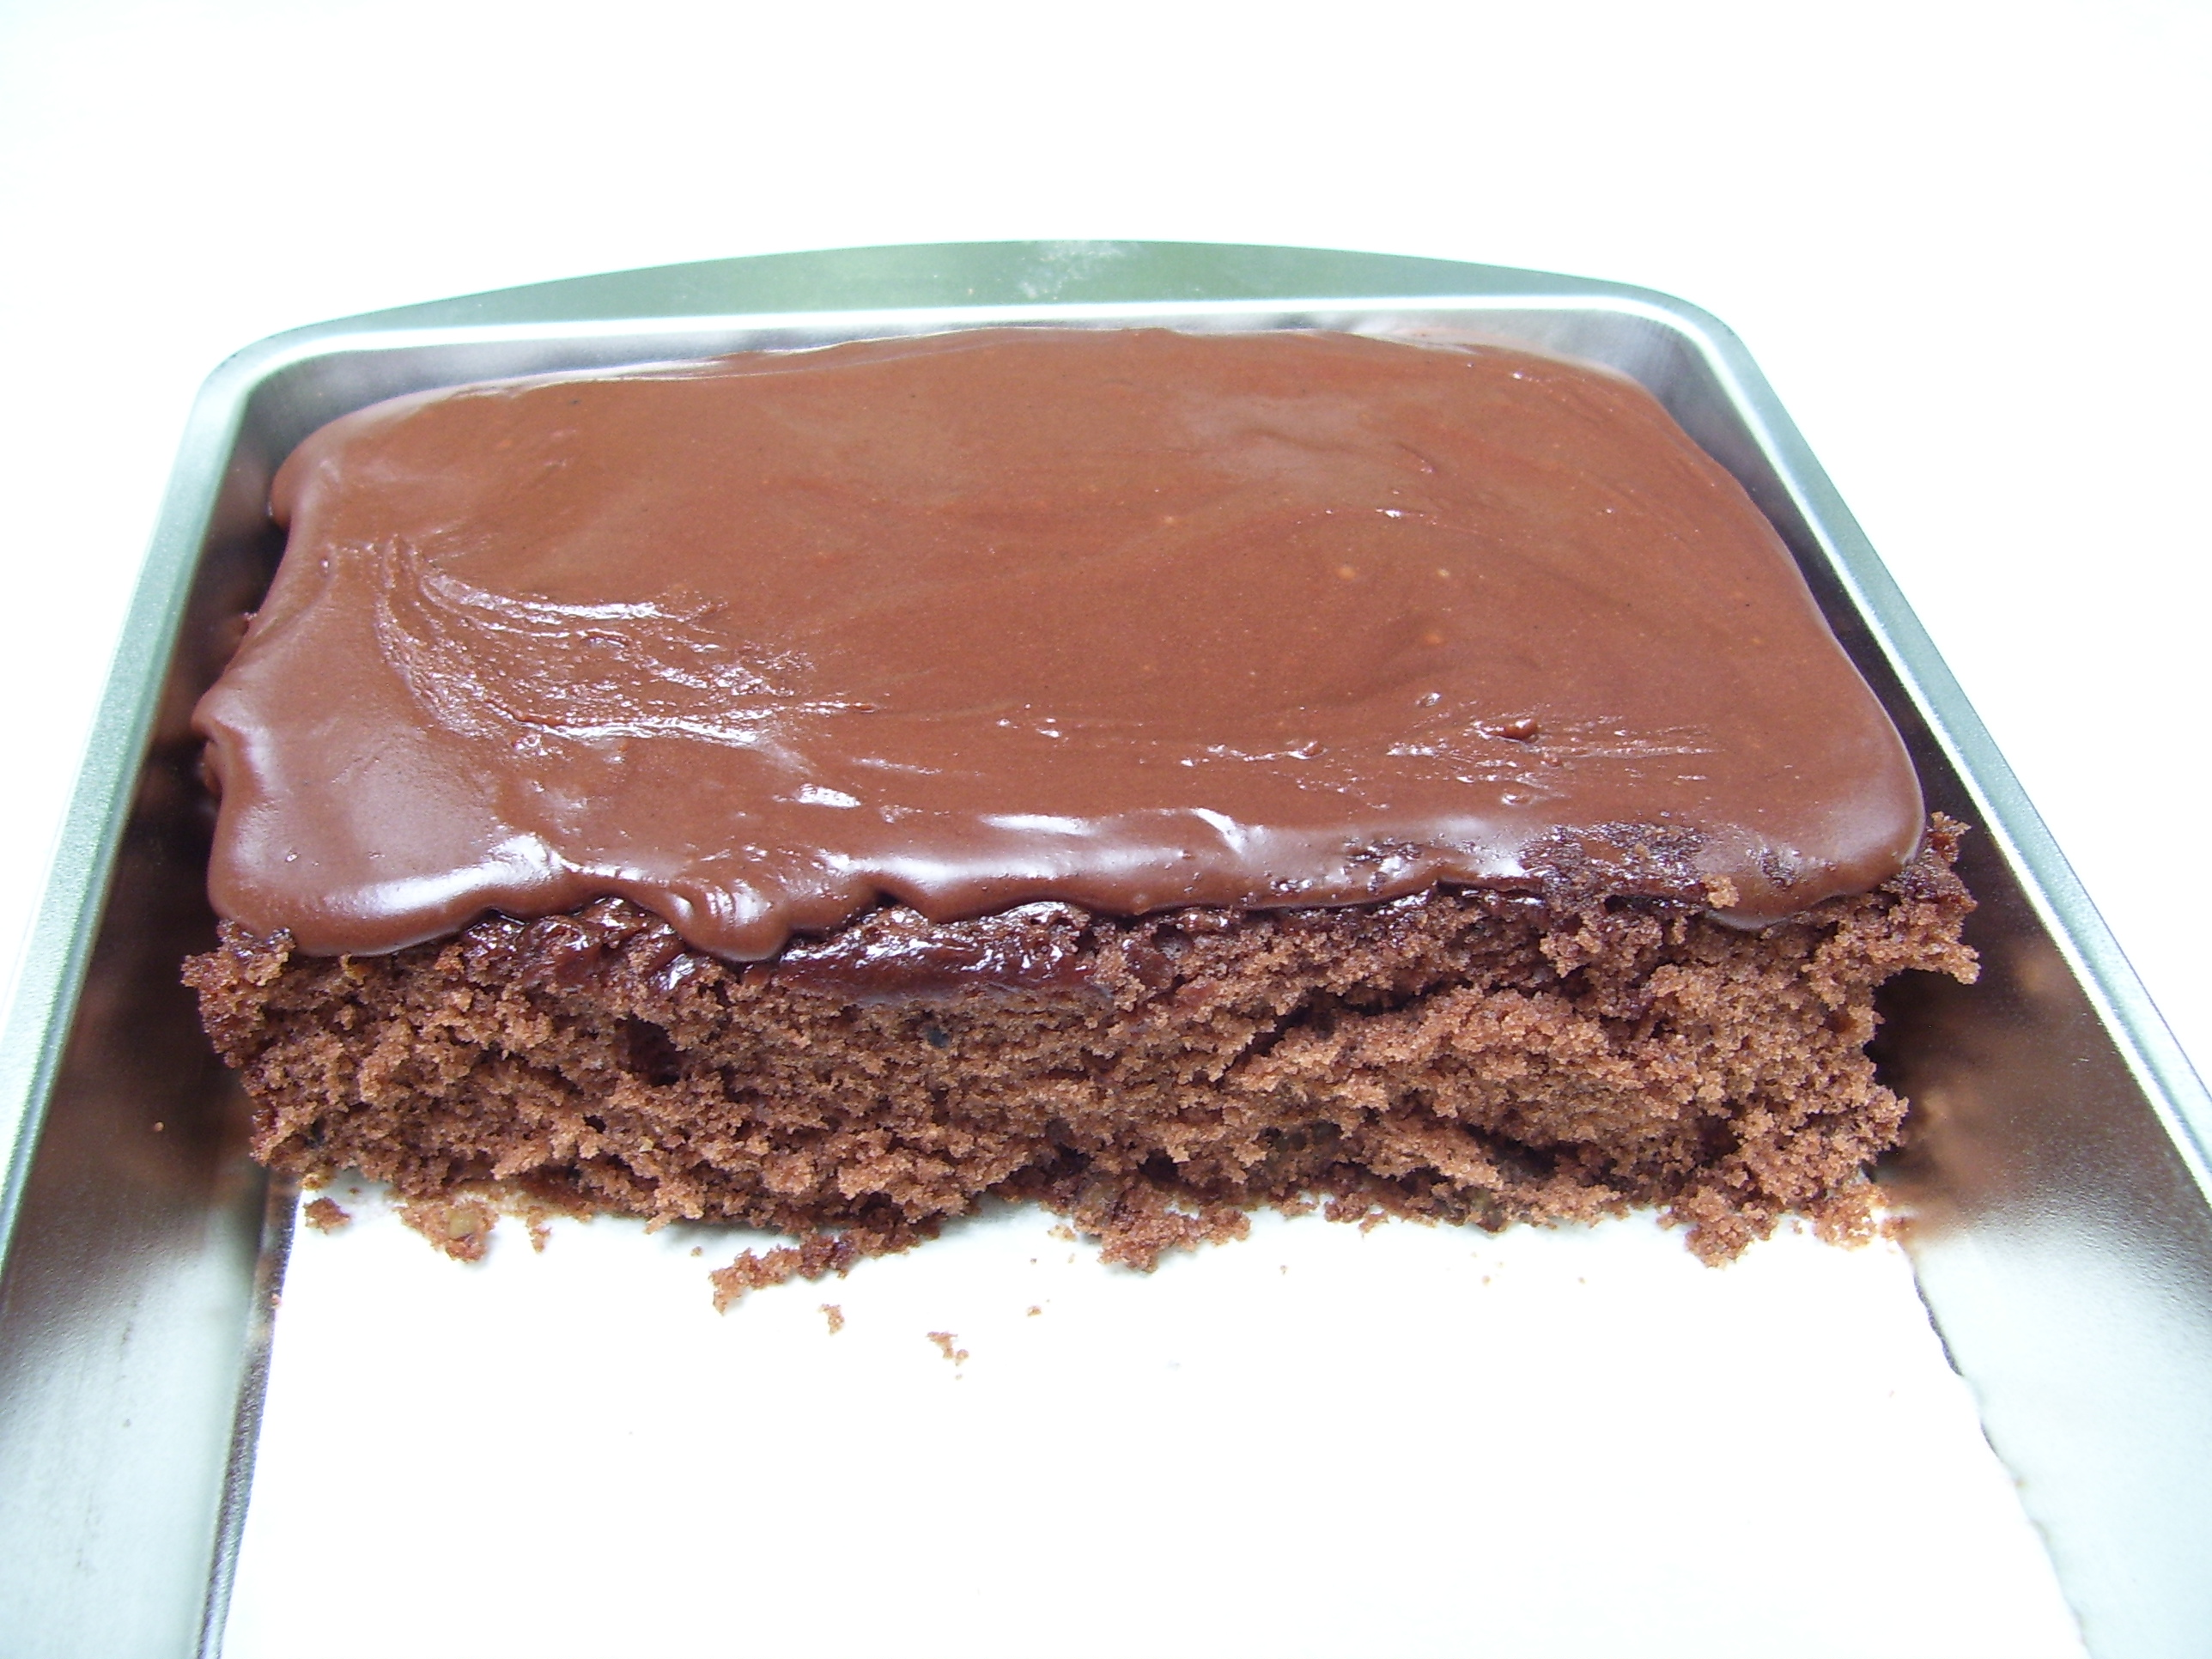 Texas Sheet Cake Recipe makes a cake delicious, decadent cake that is terrific for a crowd.